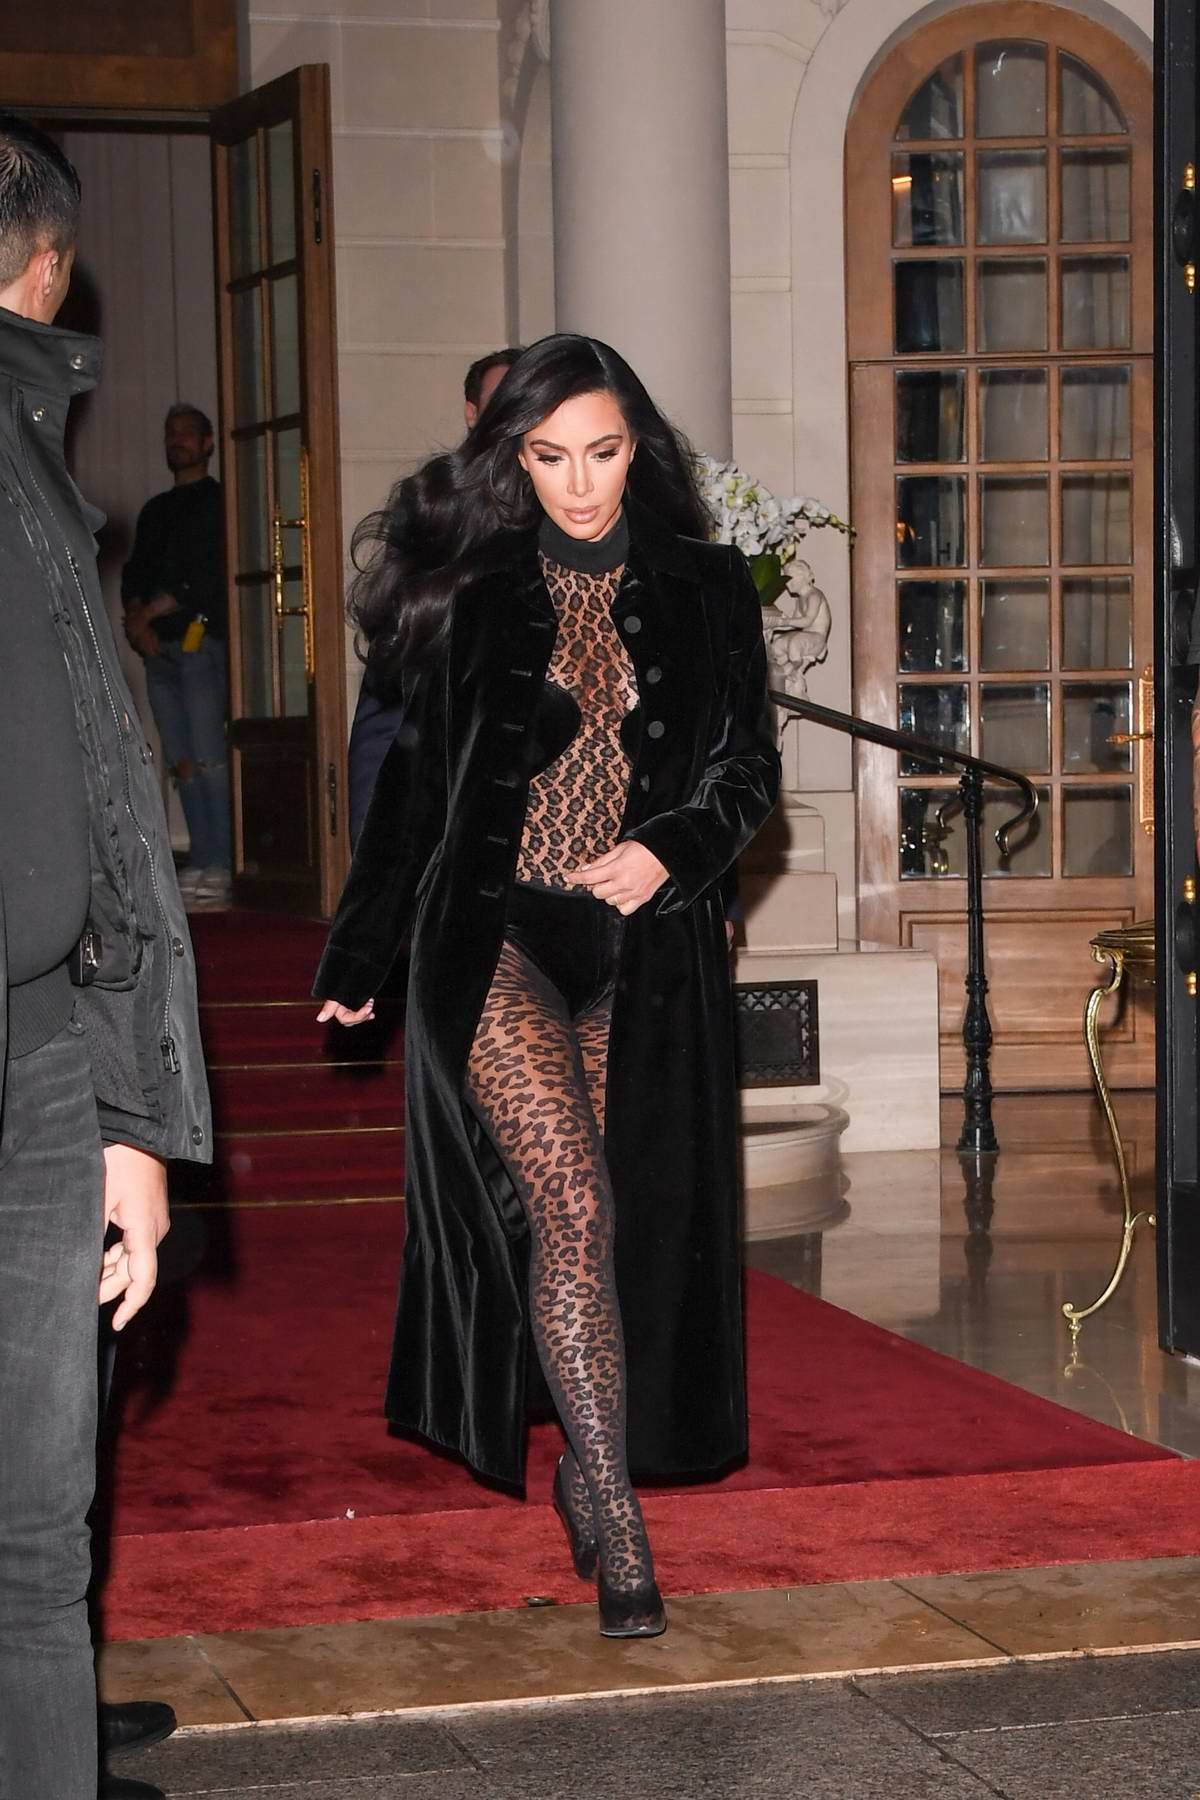 Kim Kardashian rocks an animal print bodysuit with a black long coat as she heads out of the Ritz Hotel in Paris, France